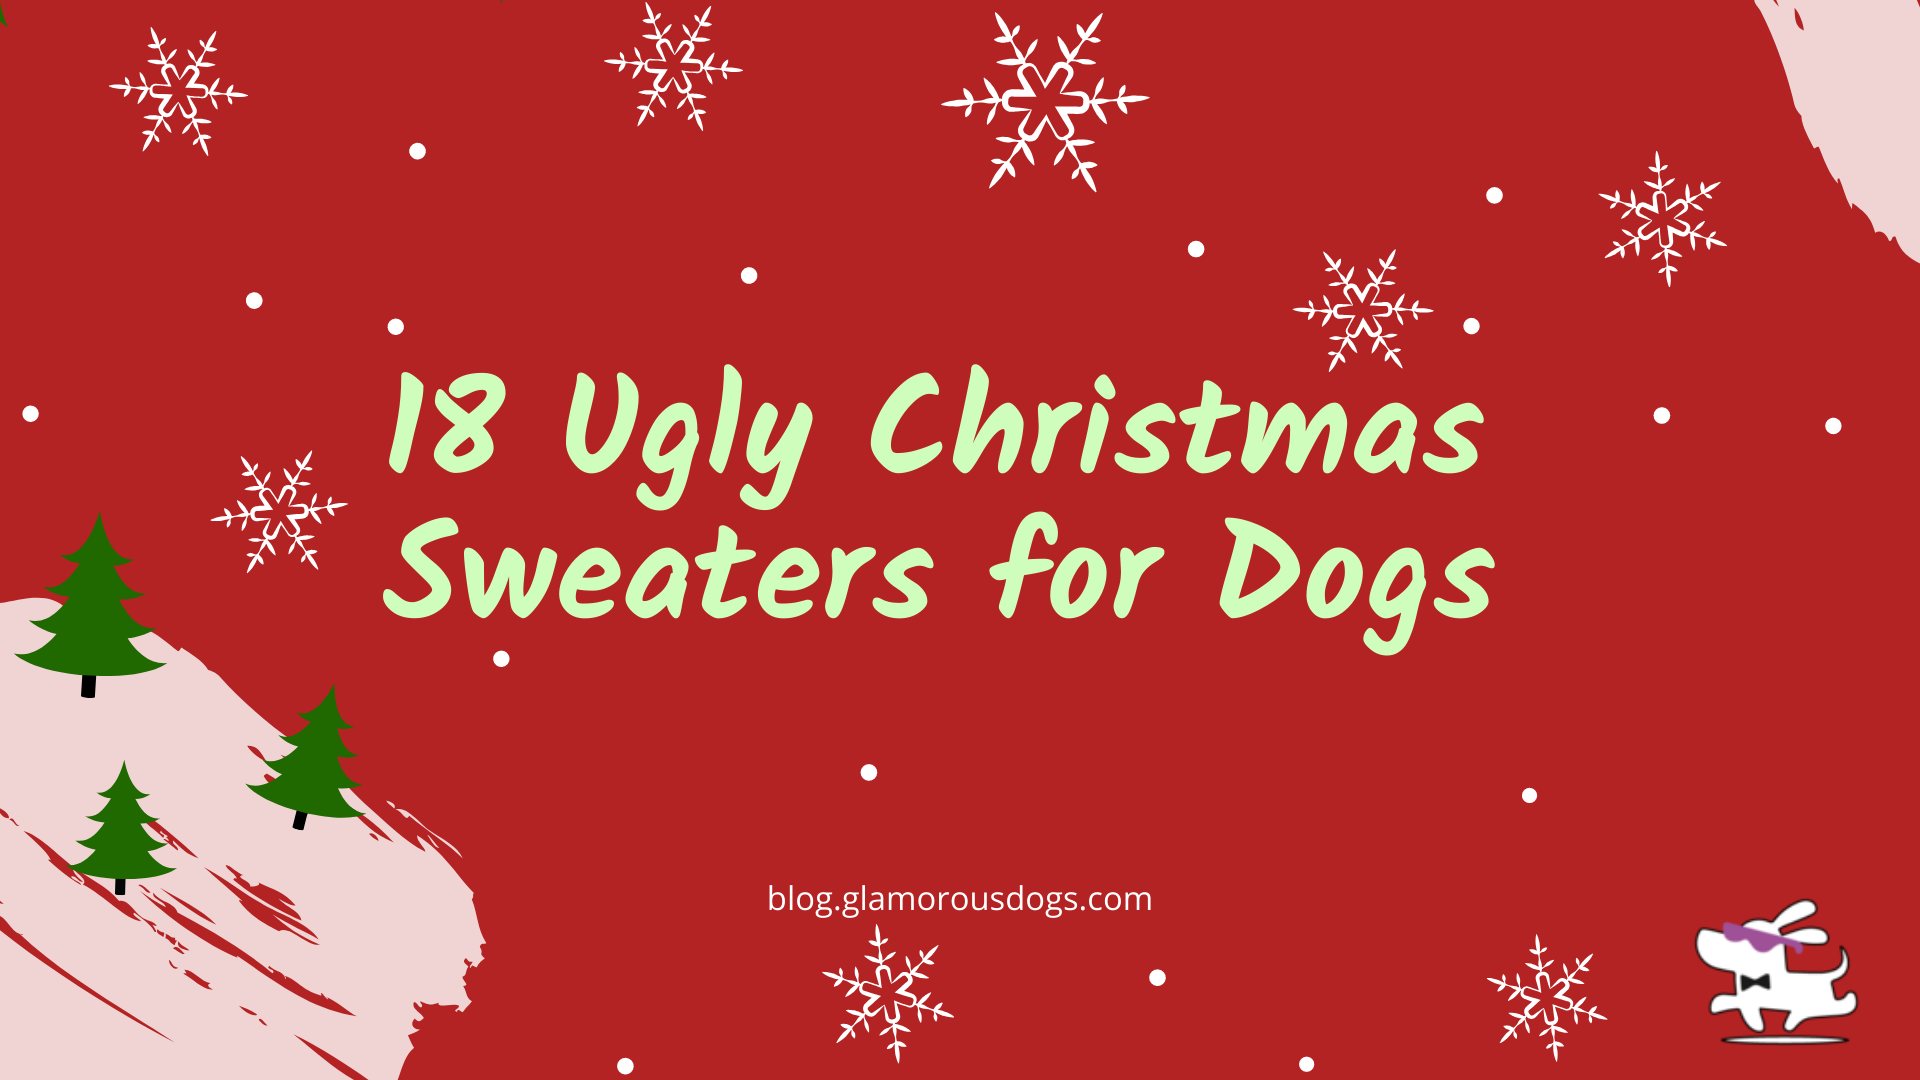 18 Ugly Christmas Sweaters for Dogs